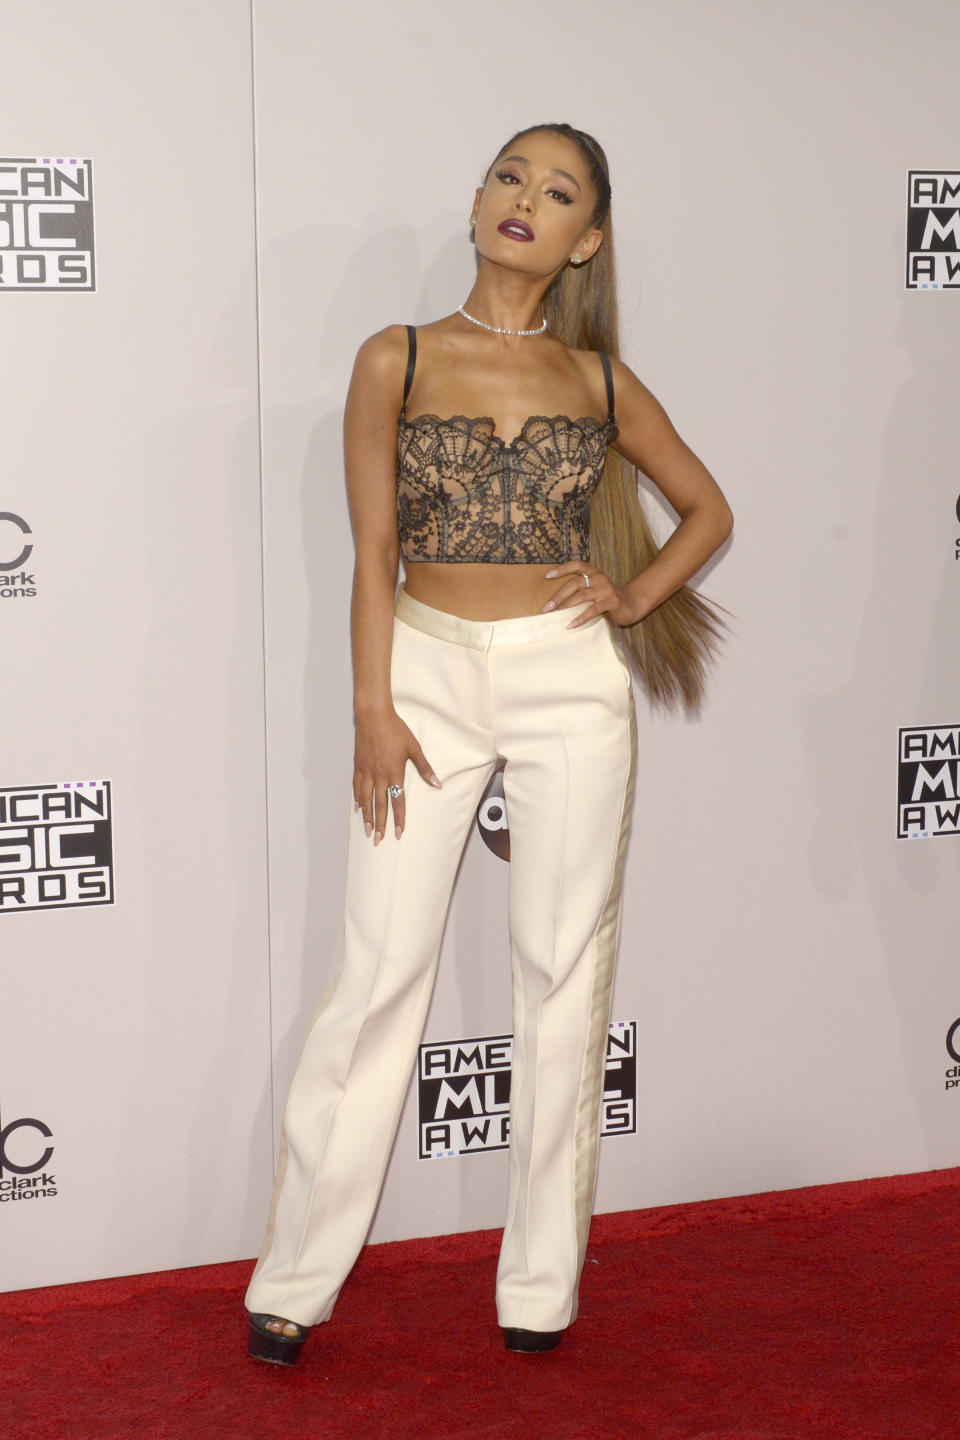 Ariana Grande's latest photo has raised concerns with fans over her slim frame. (Image via Getty Images)